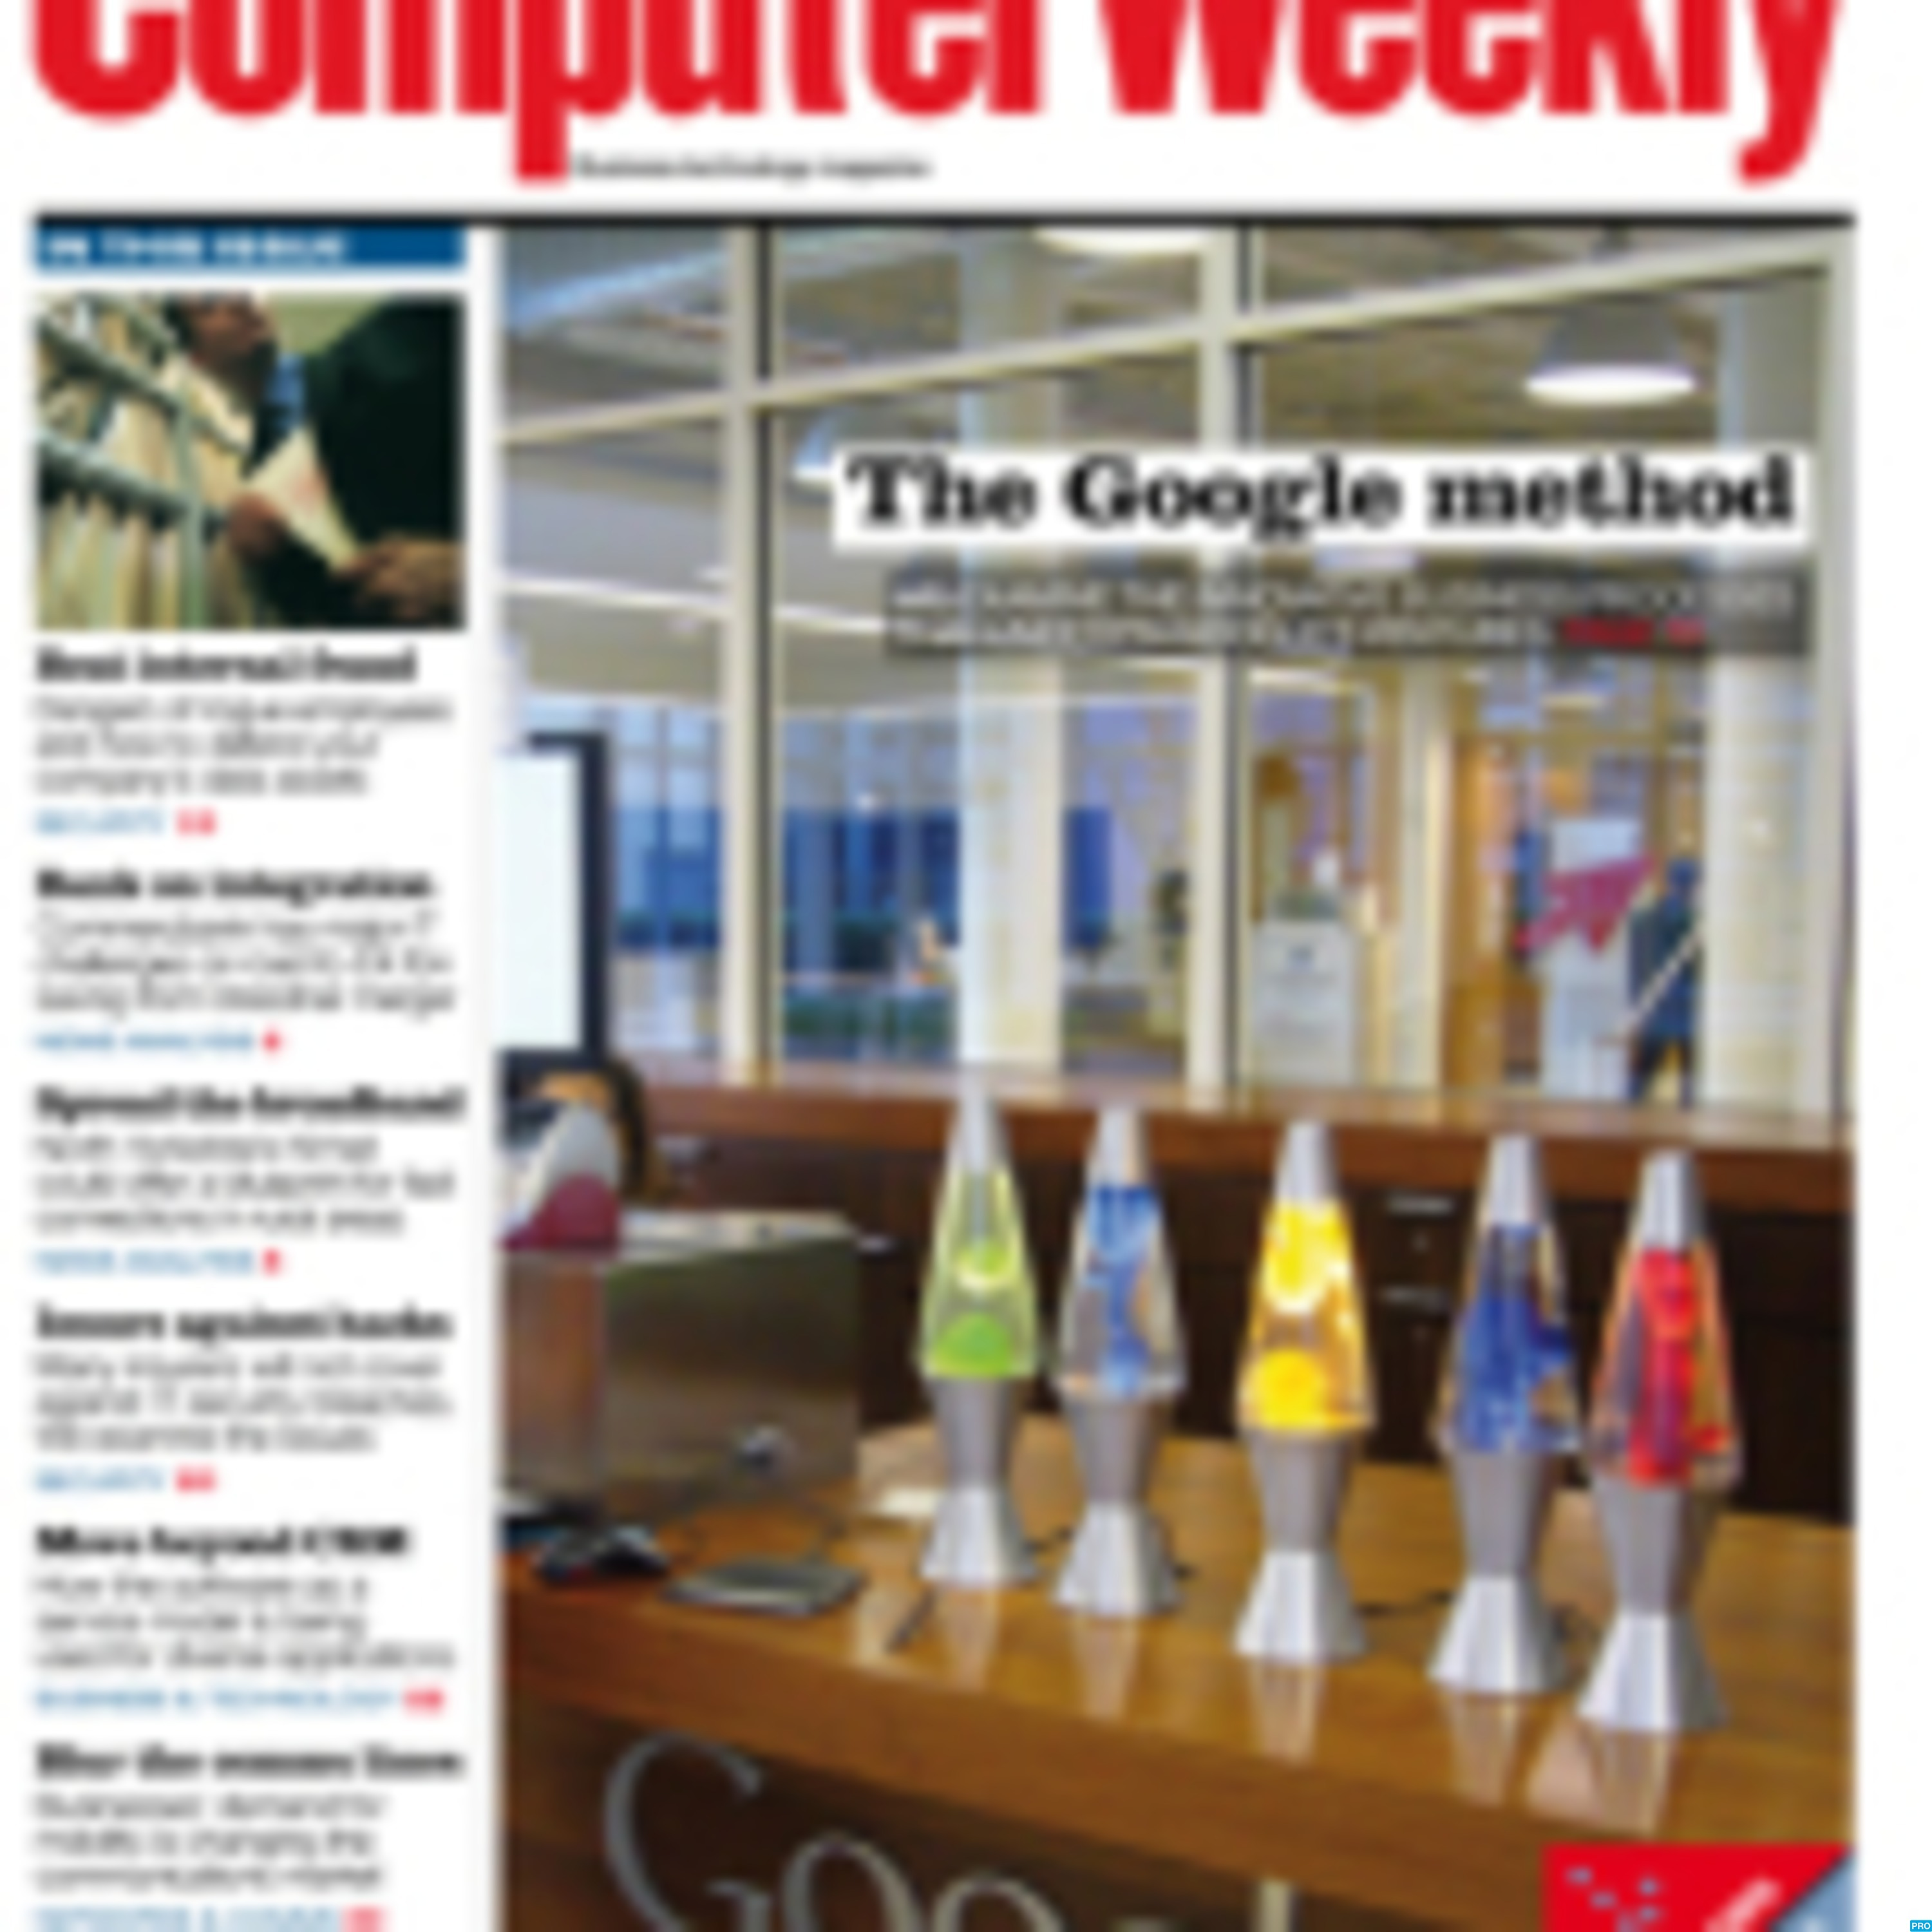 podcasts @ComputerWeekly